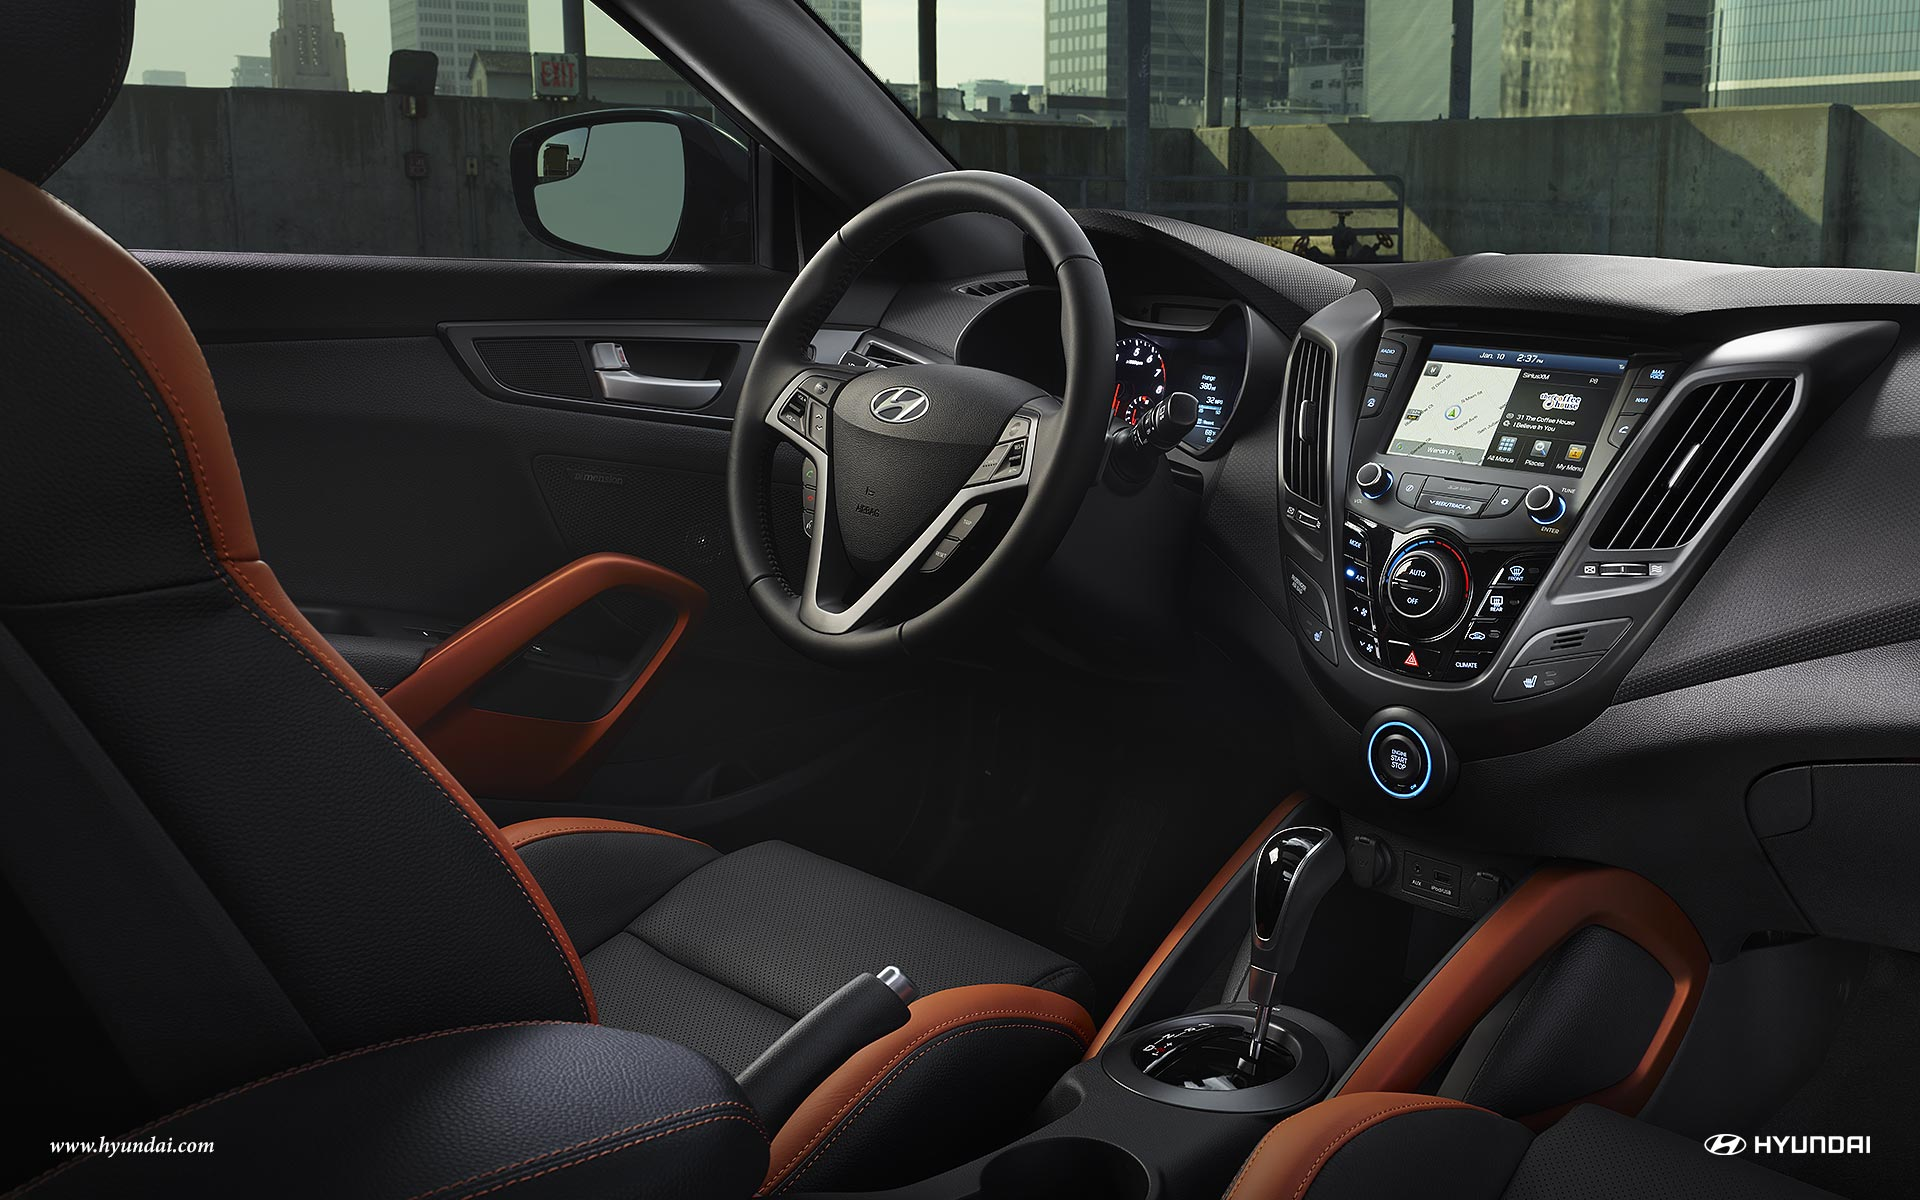 Exceptional Hyundai Veloster Turbo Interior